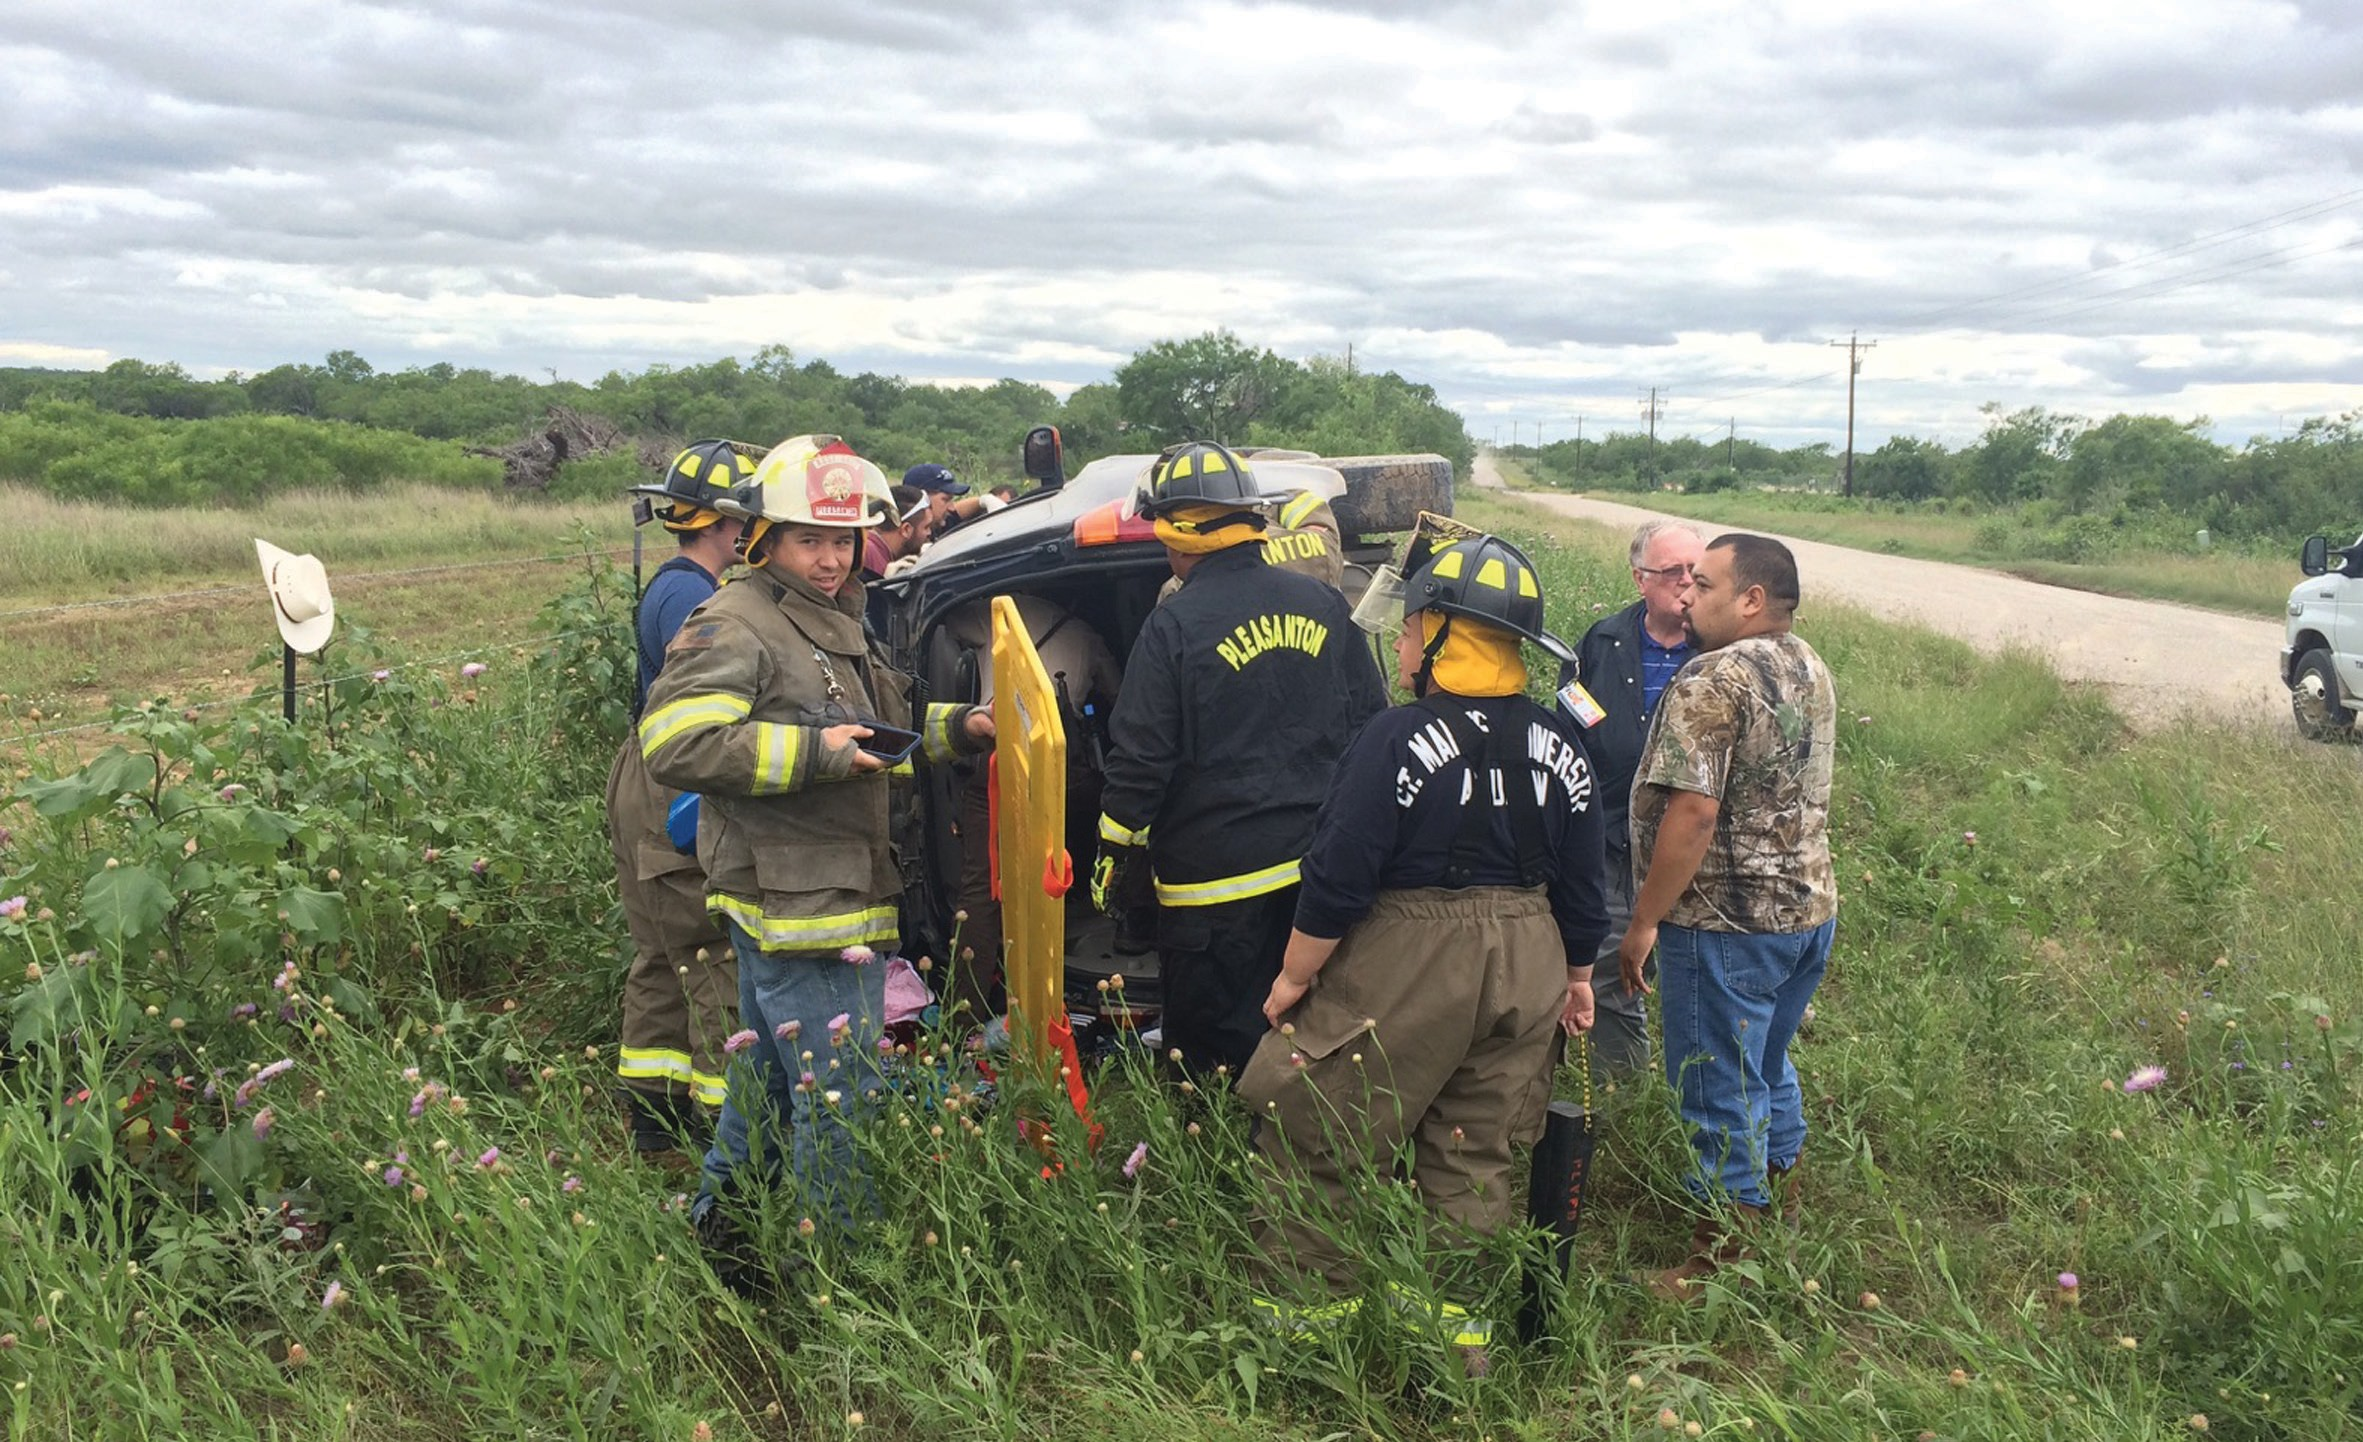 A one-car rollover occurred near the Industrial Park last Tuesday, April 28. A woman was transported to South Texas Regional Medical Center. Two children were also on board, but were unharmed.